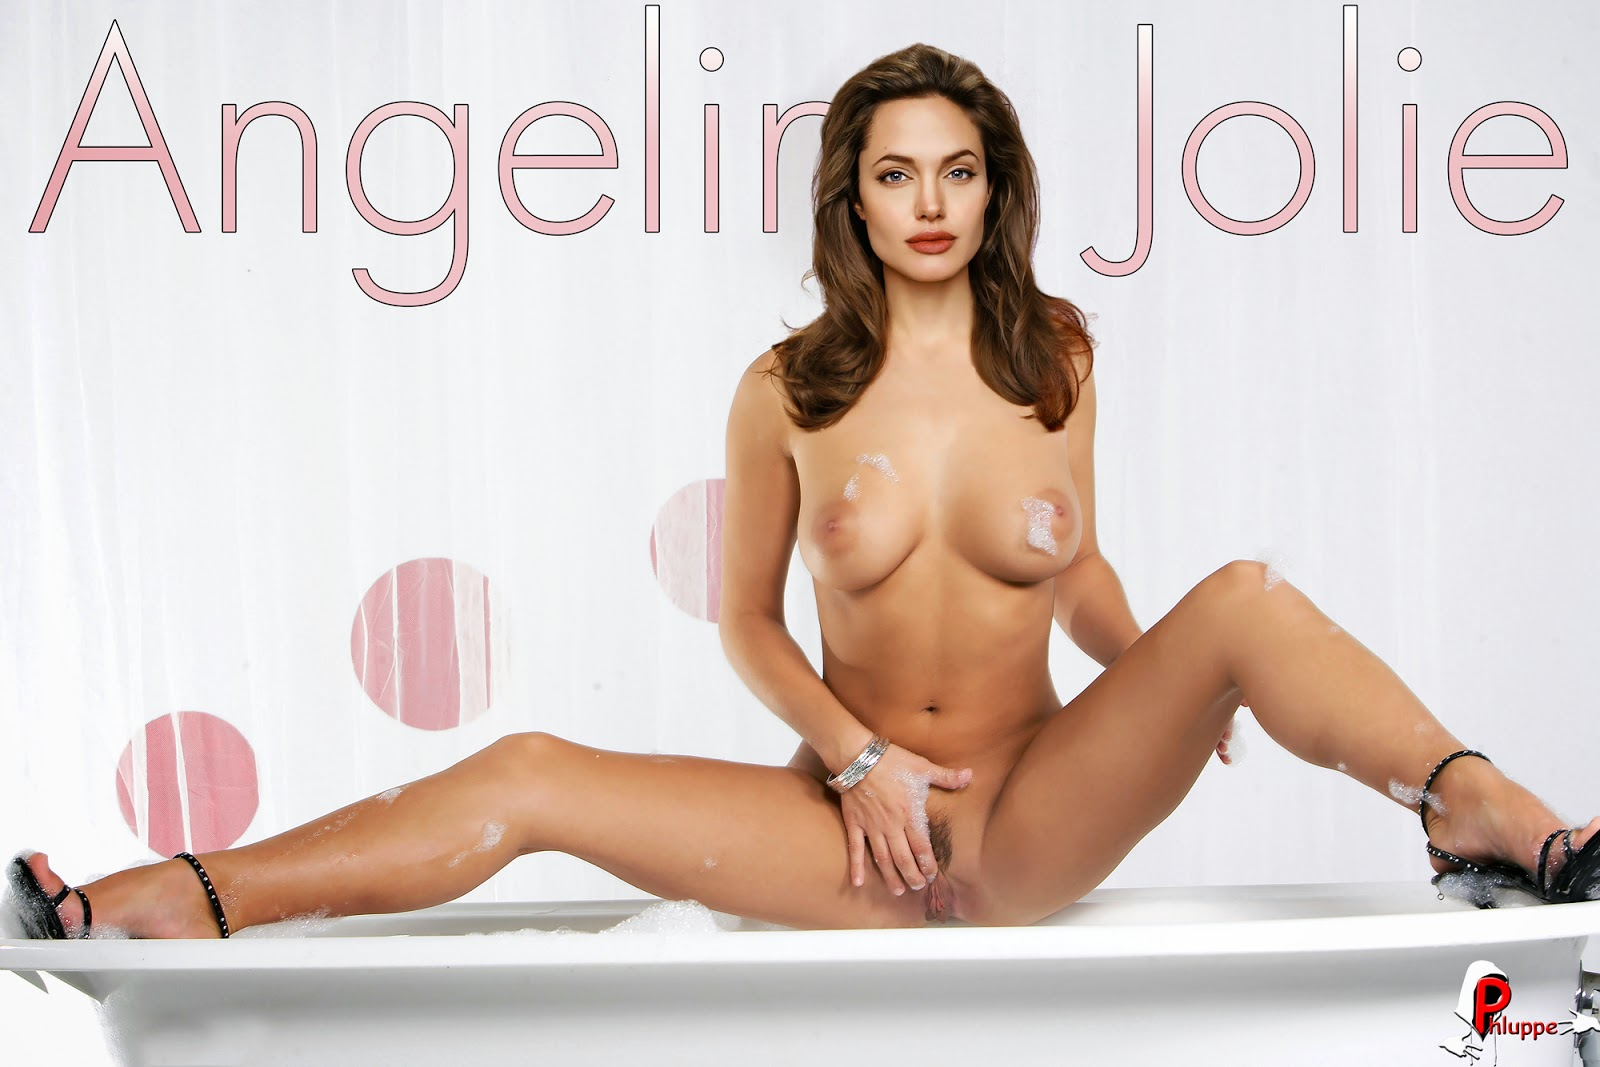 Pusssy Pics Of Angelina Jolie 115